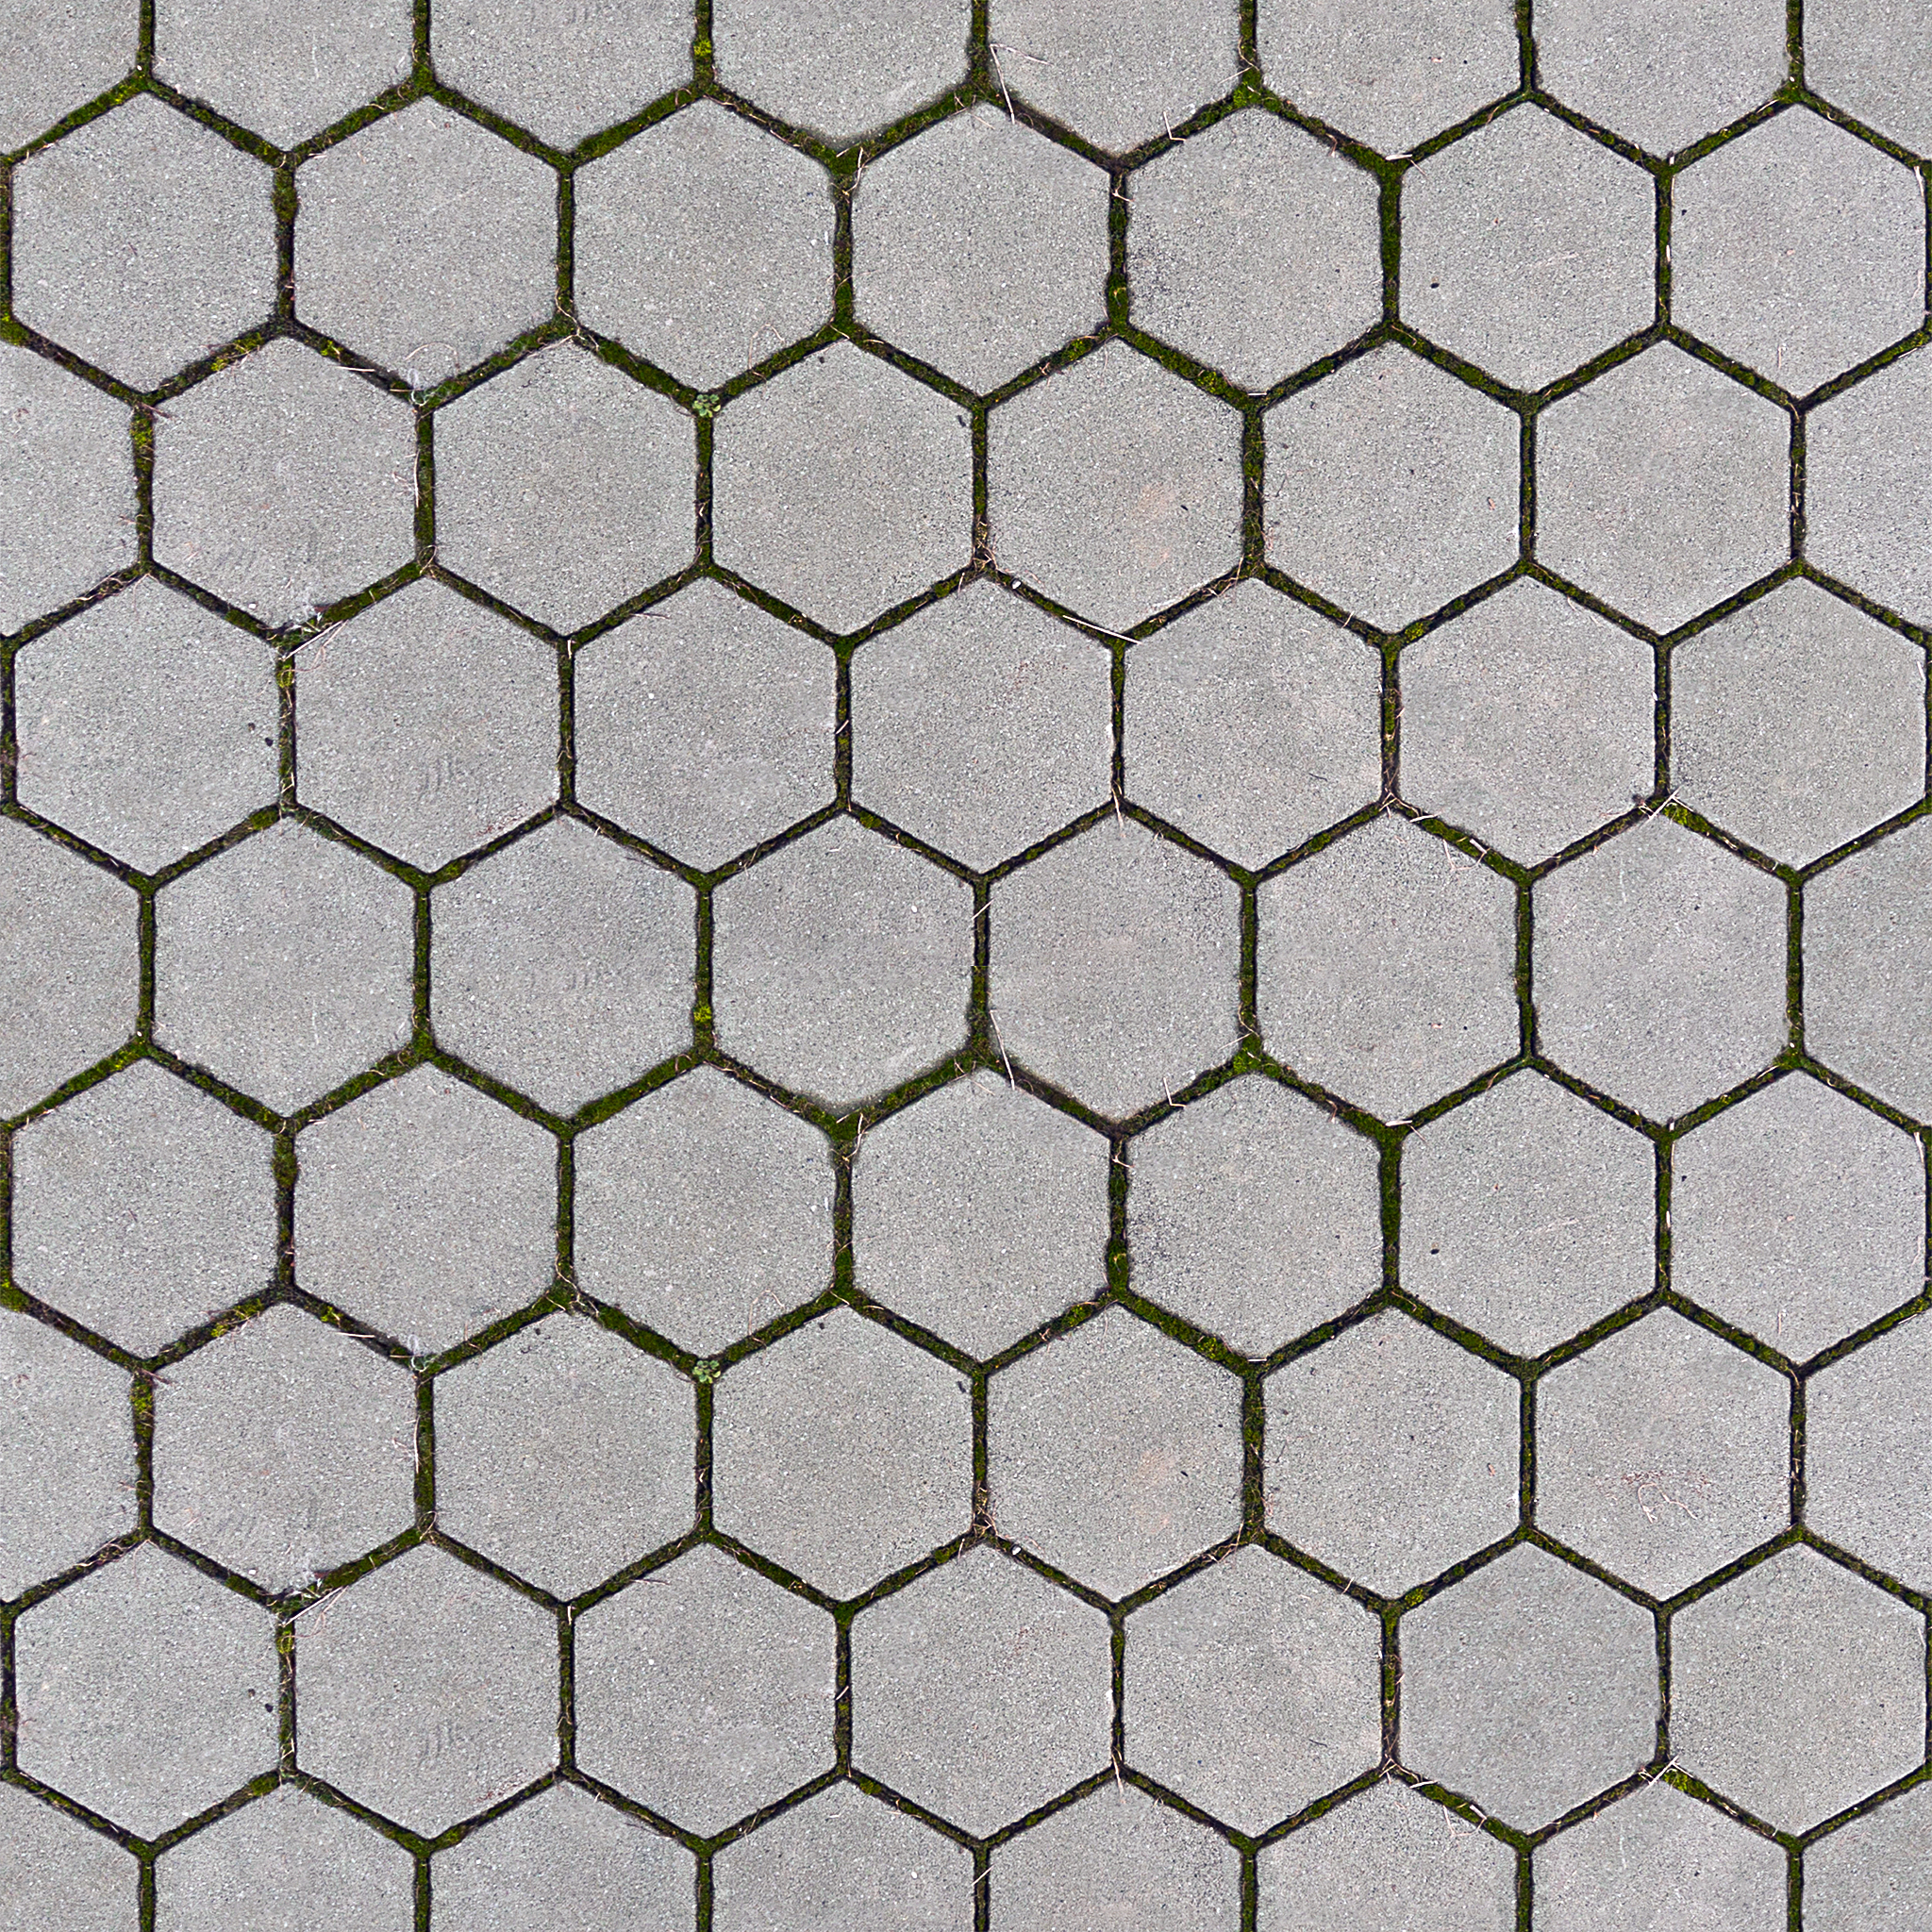 Free photo: Pavement Texture.